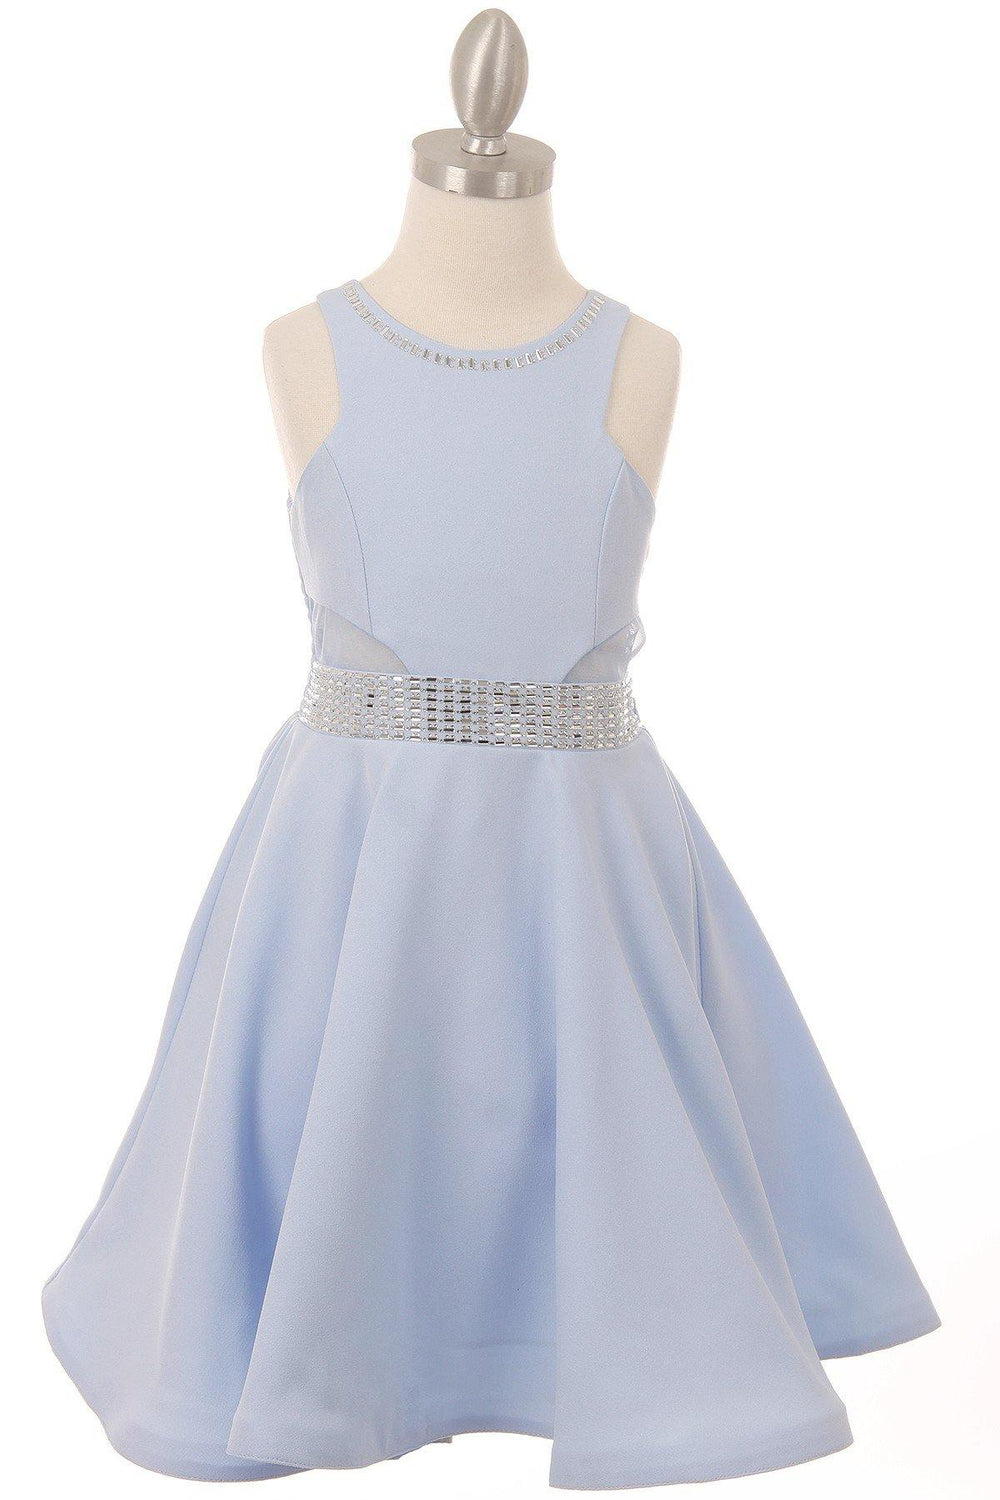 Short Sparkle Flower Girl Dress - The Dress Outlet Blue